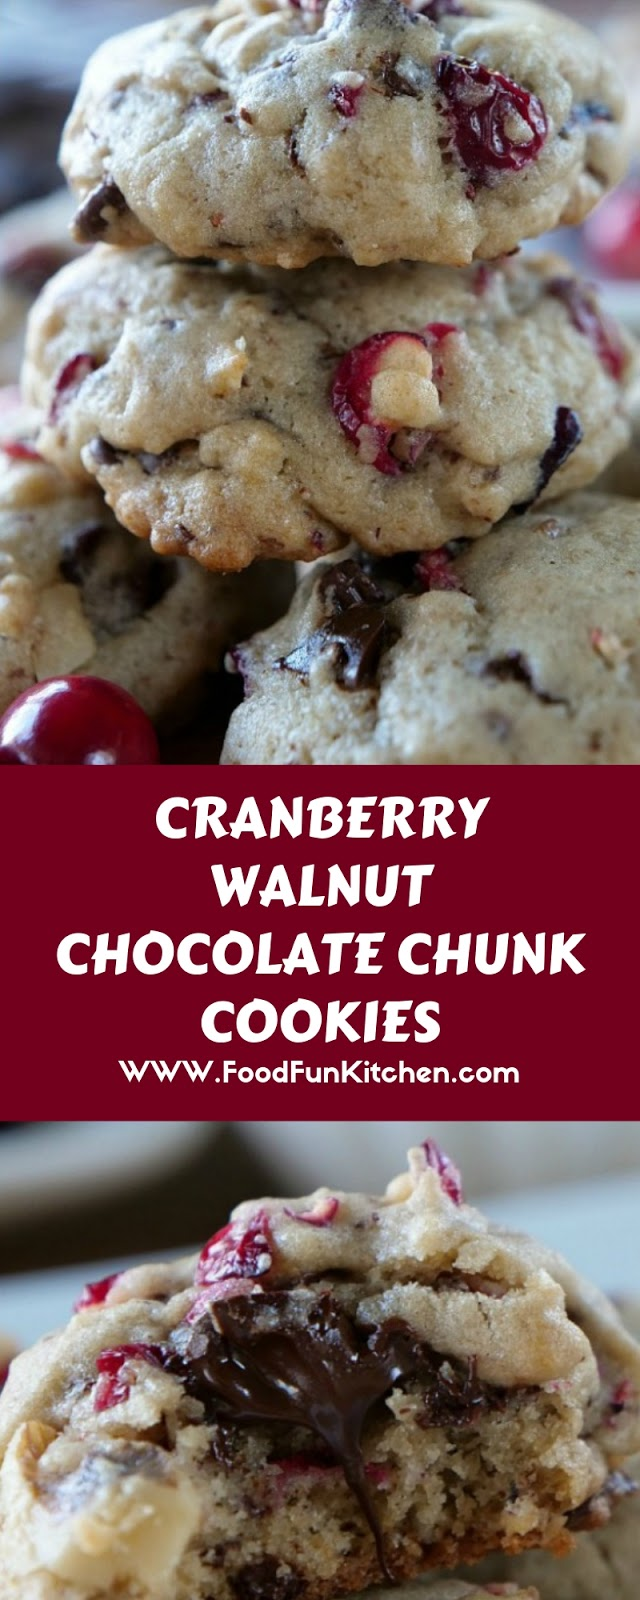 CRANBERRY WALNUT CHOCOLATE CHUNK COOKIES